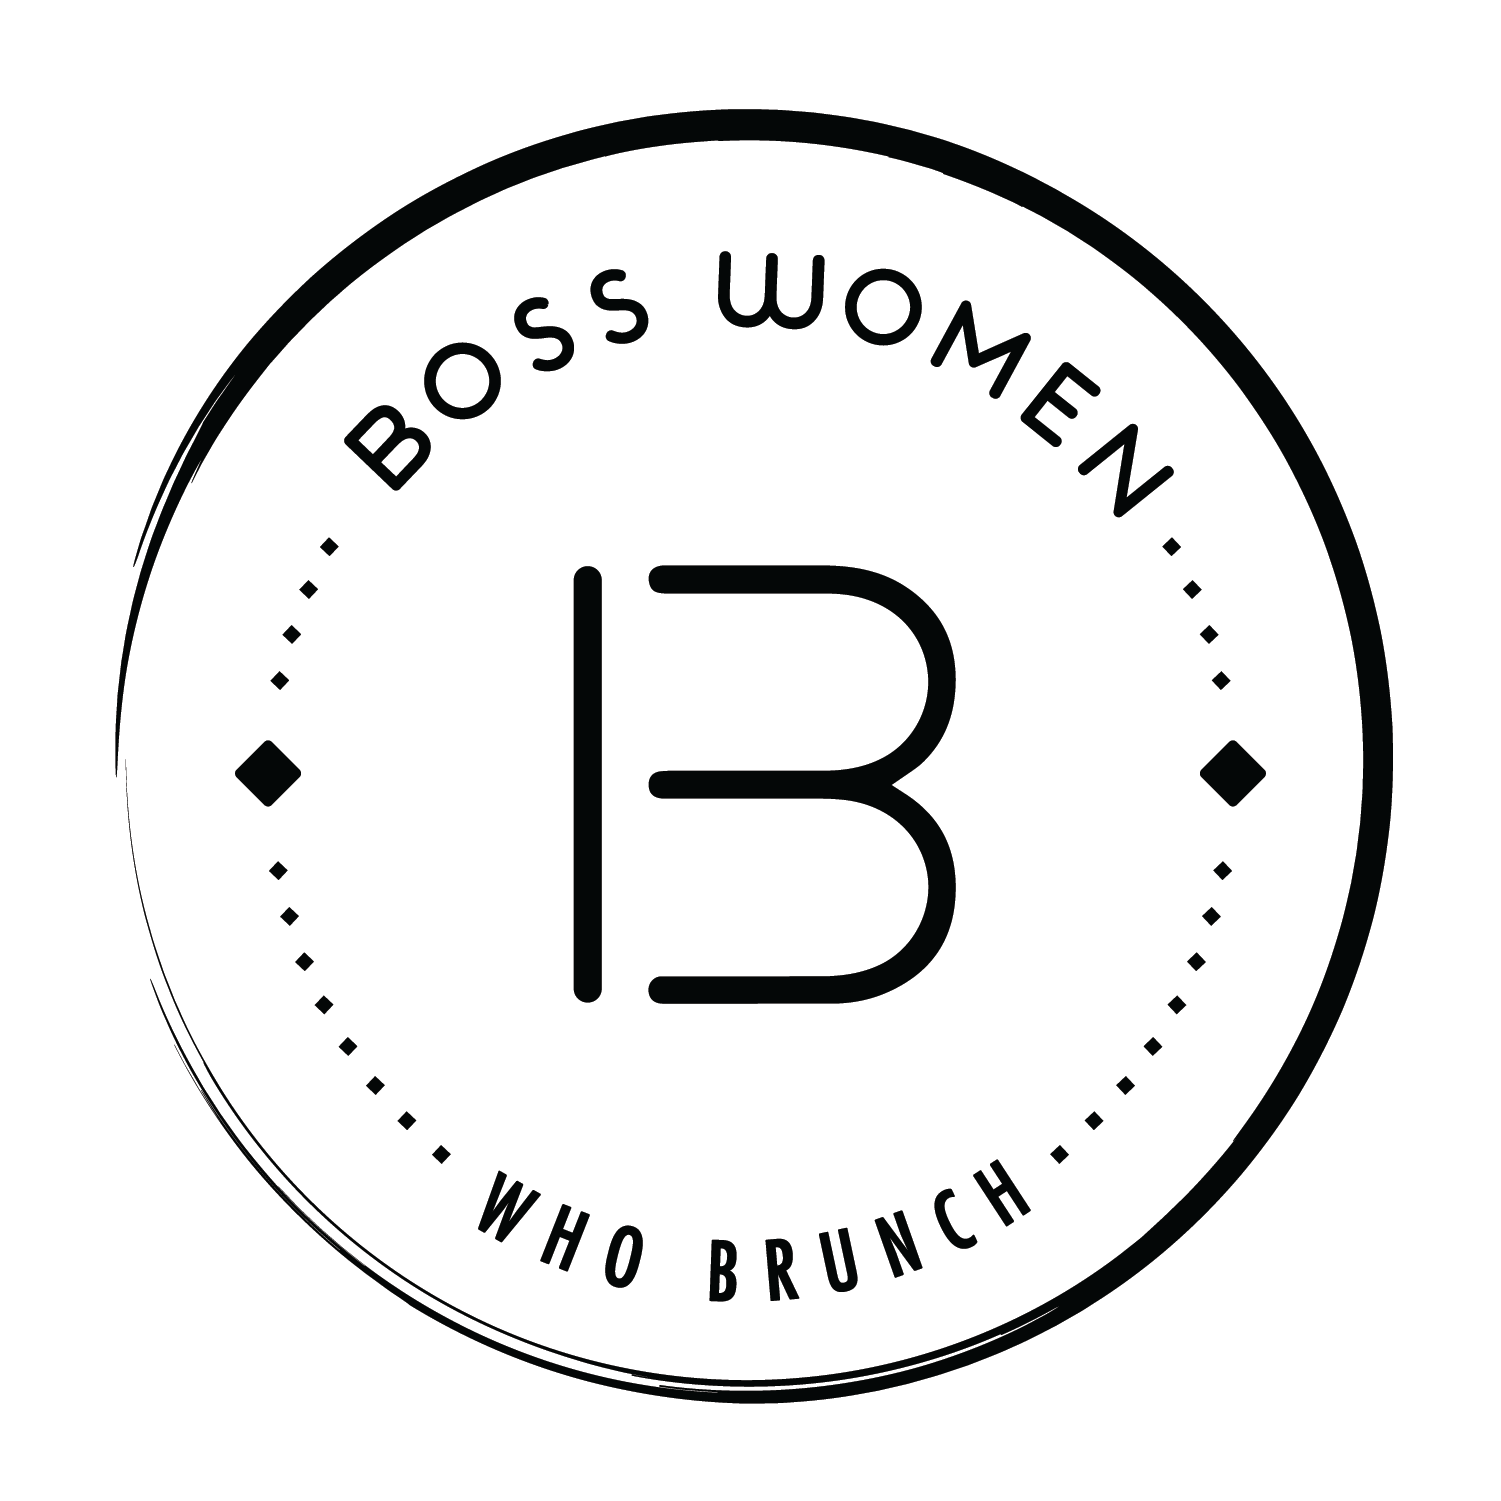 Boss Women Who Brunch